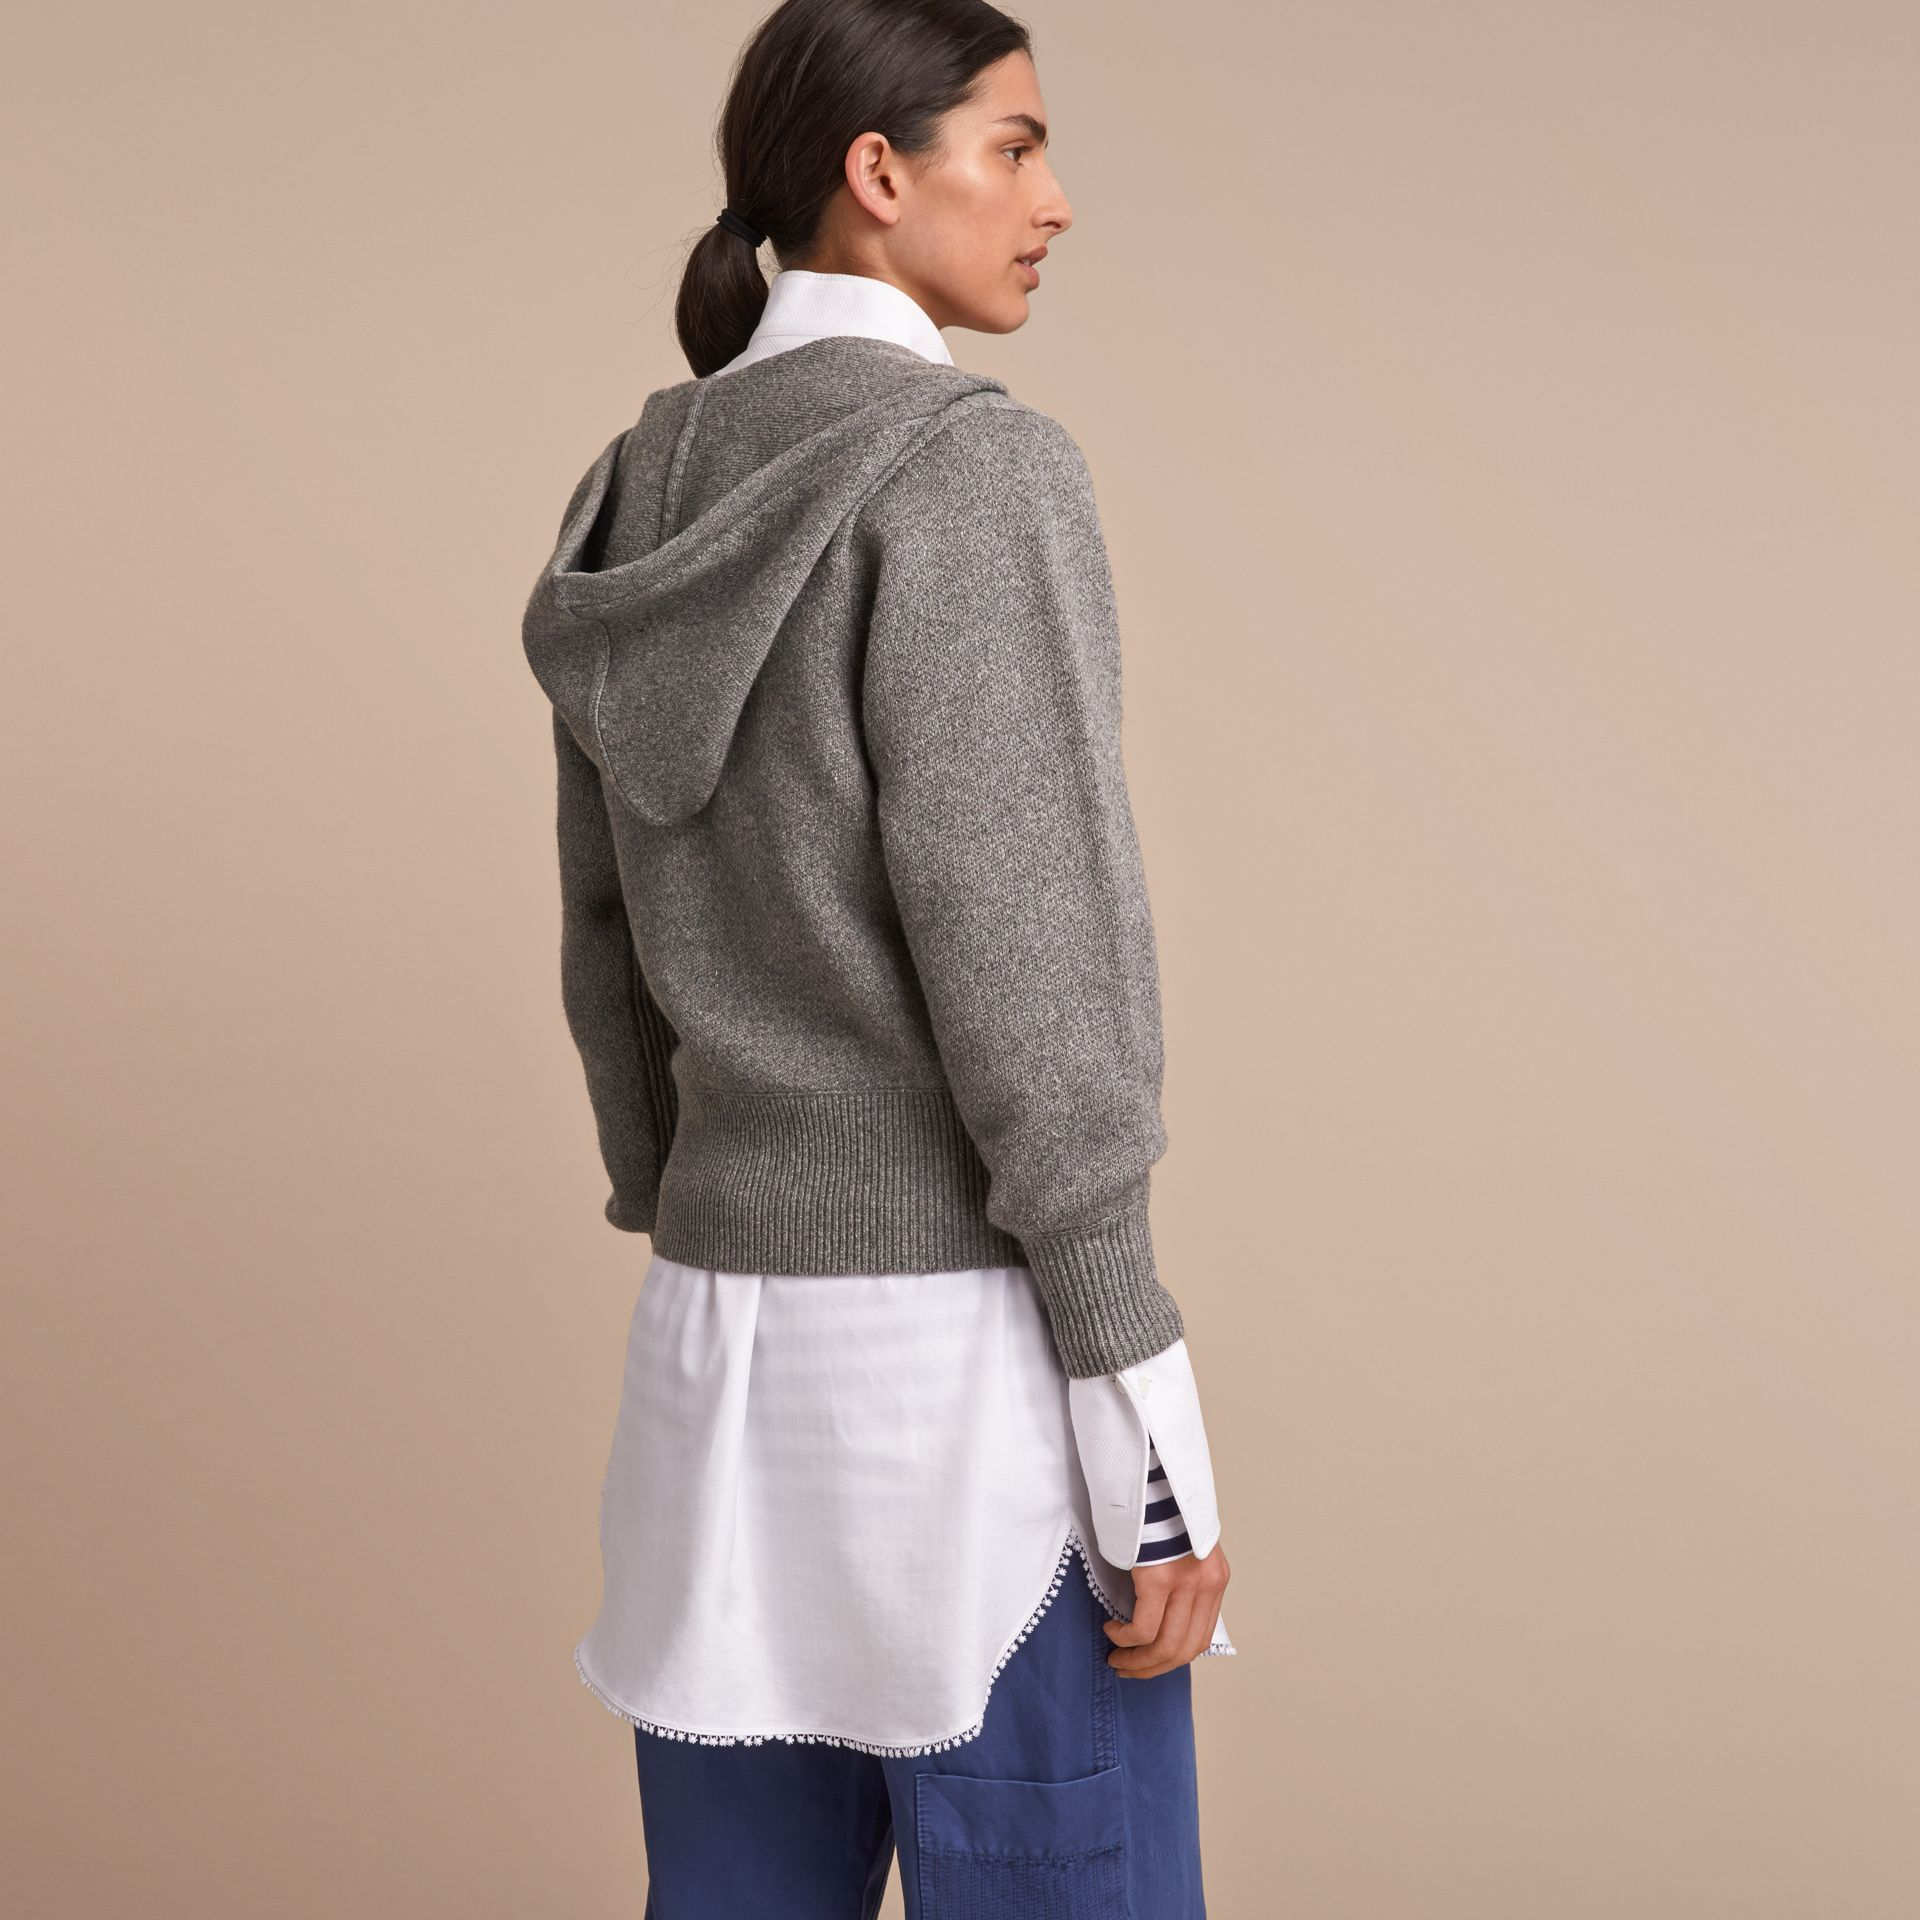 Hooded Pallas Heads Motif Wool Cashmere Top in Mid Grey Melange - Women | Burberry - gallery image 3